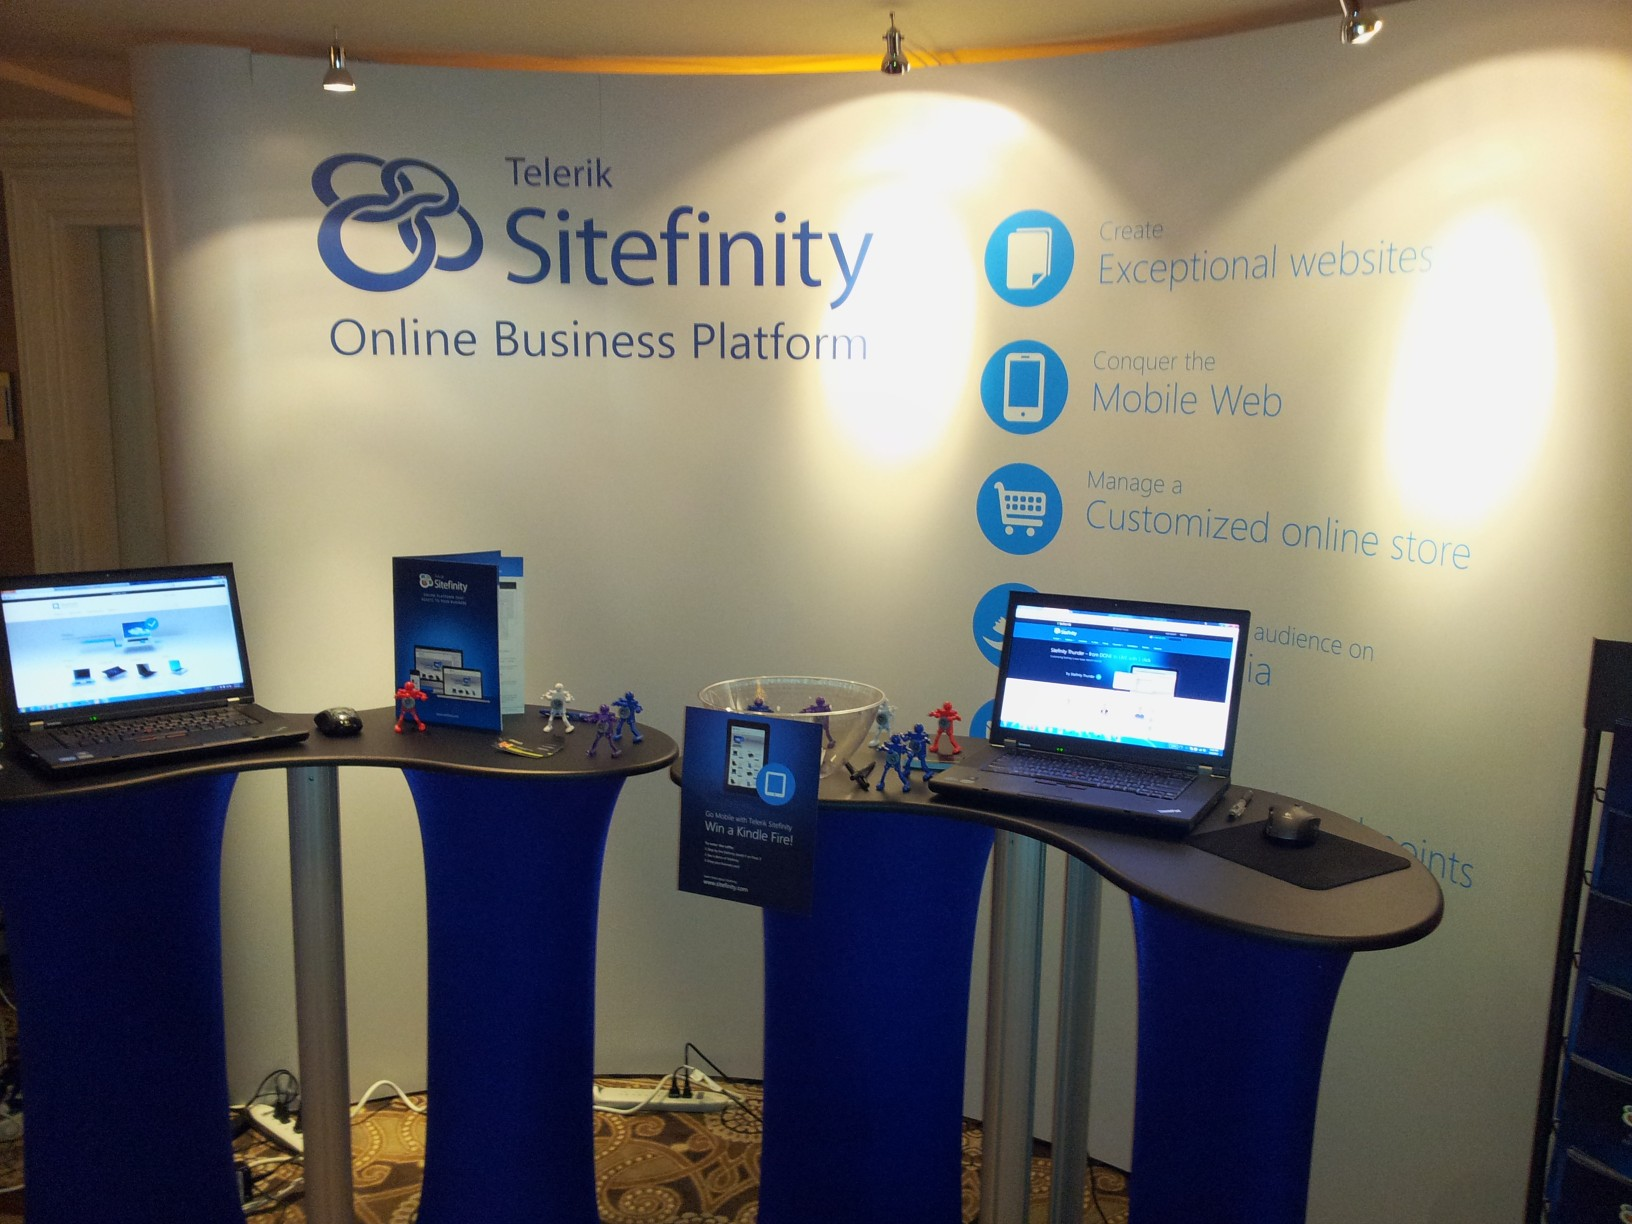 Sitefinity Booth at CMS Expo